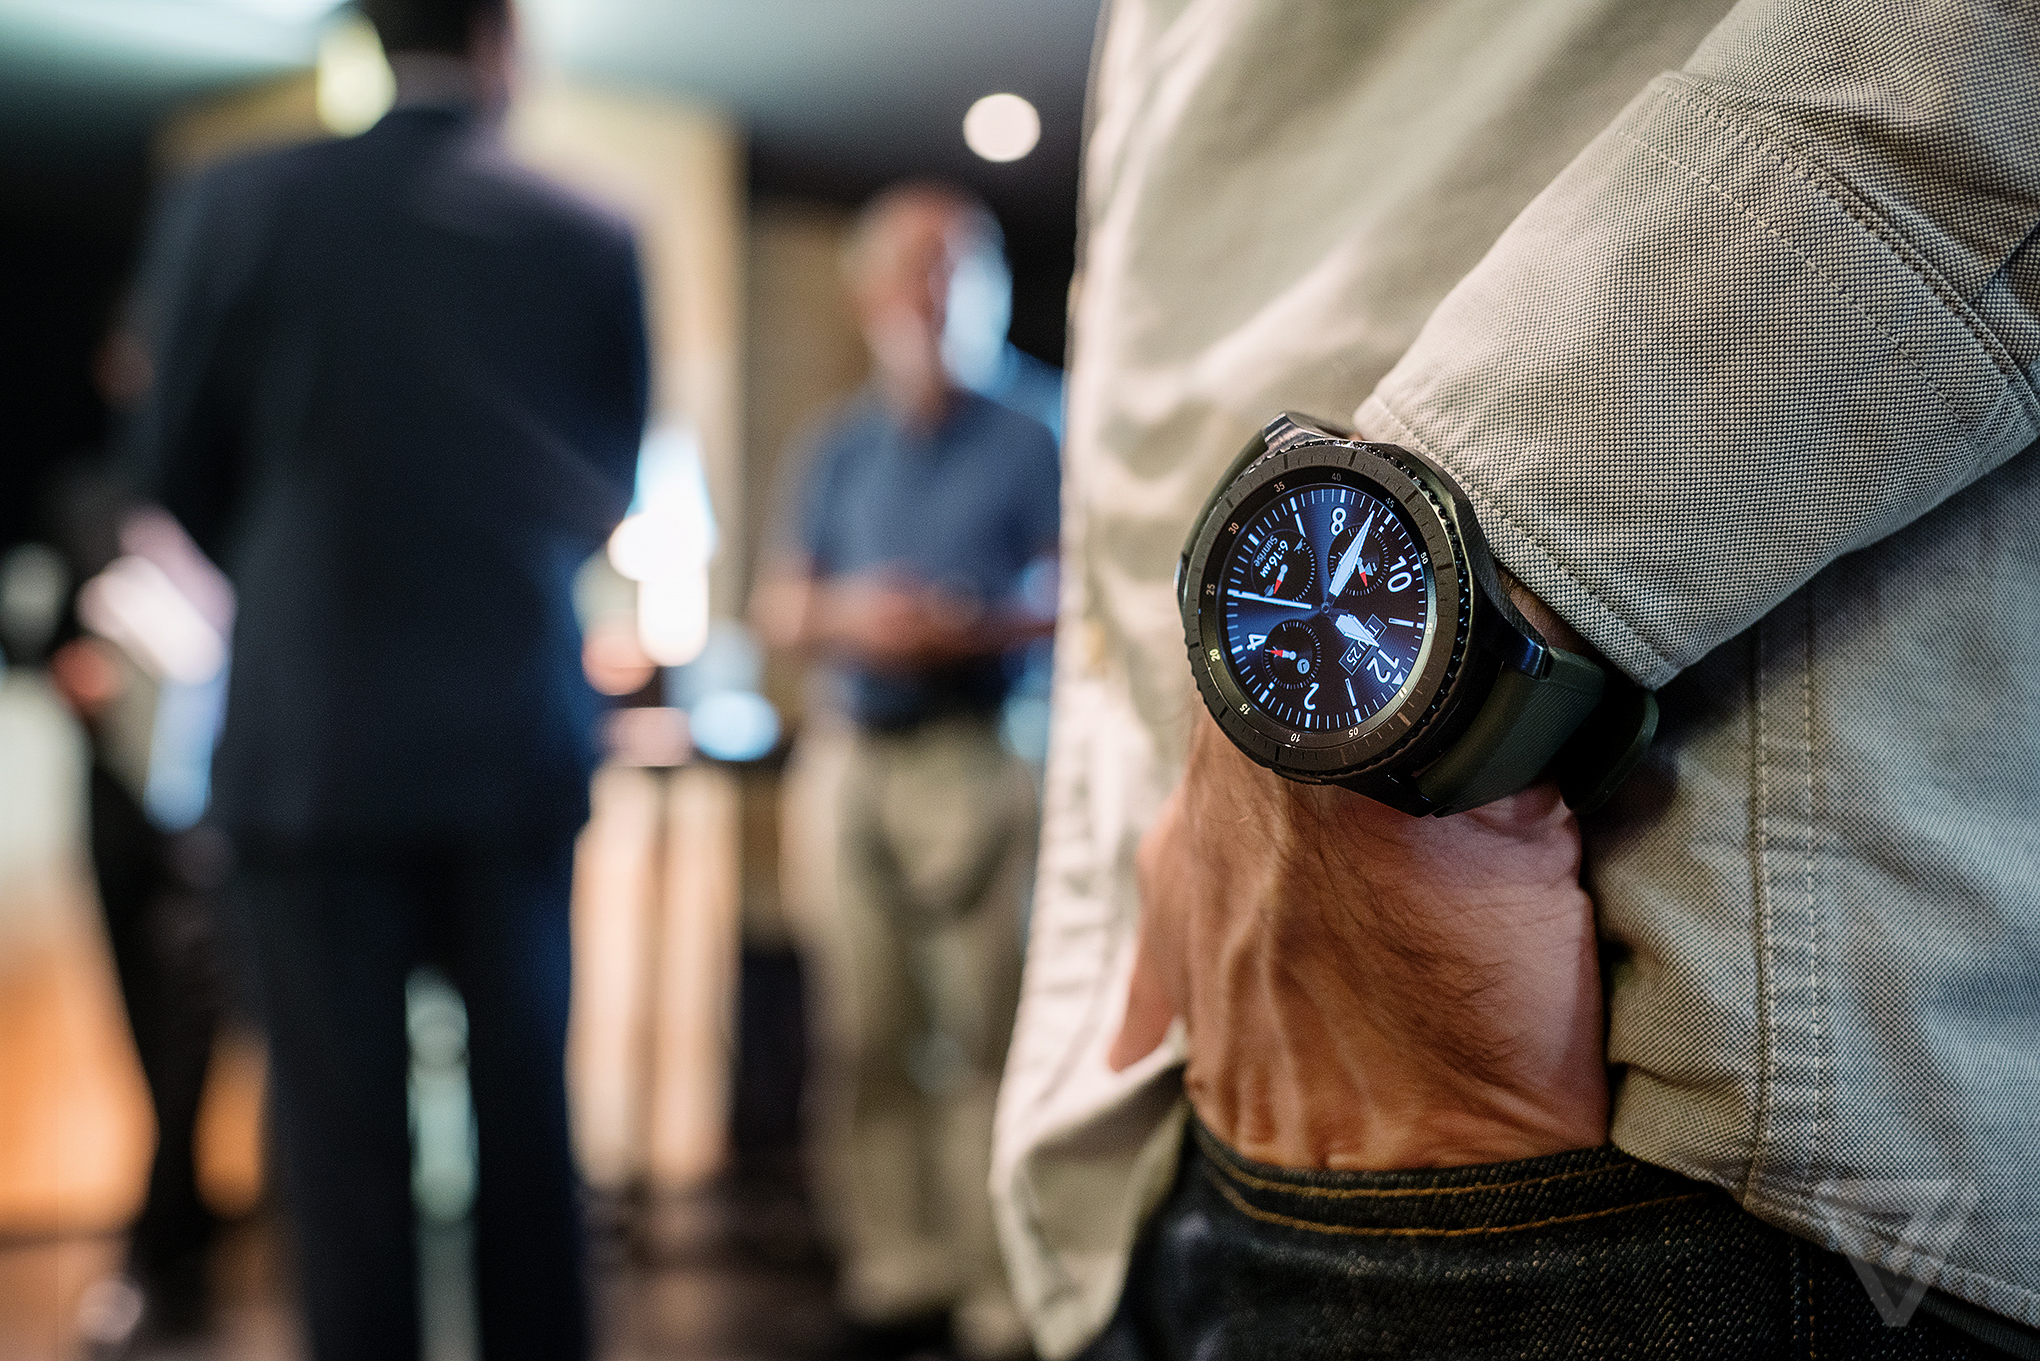 Samsung's Gear S3 has GPS, LTE, and a bigger screen - The ...